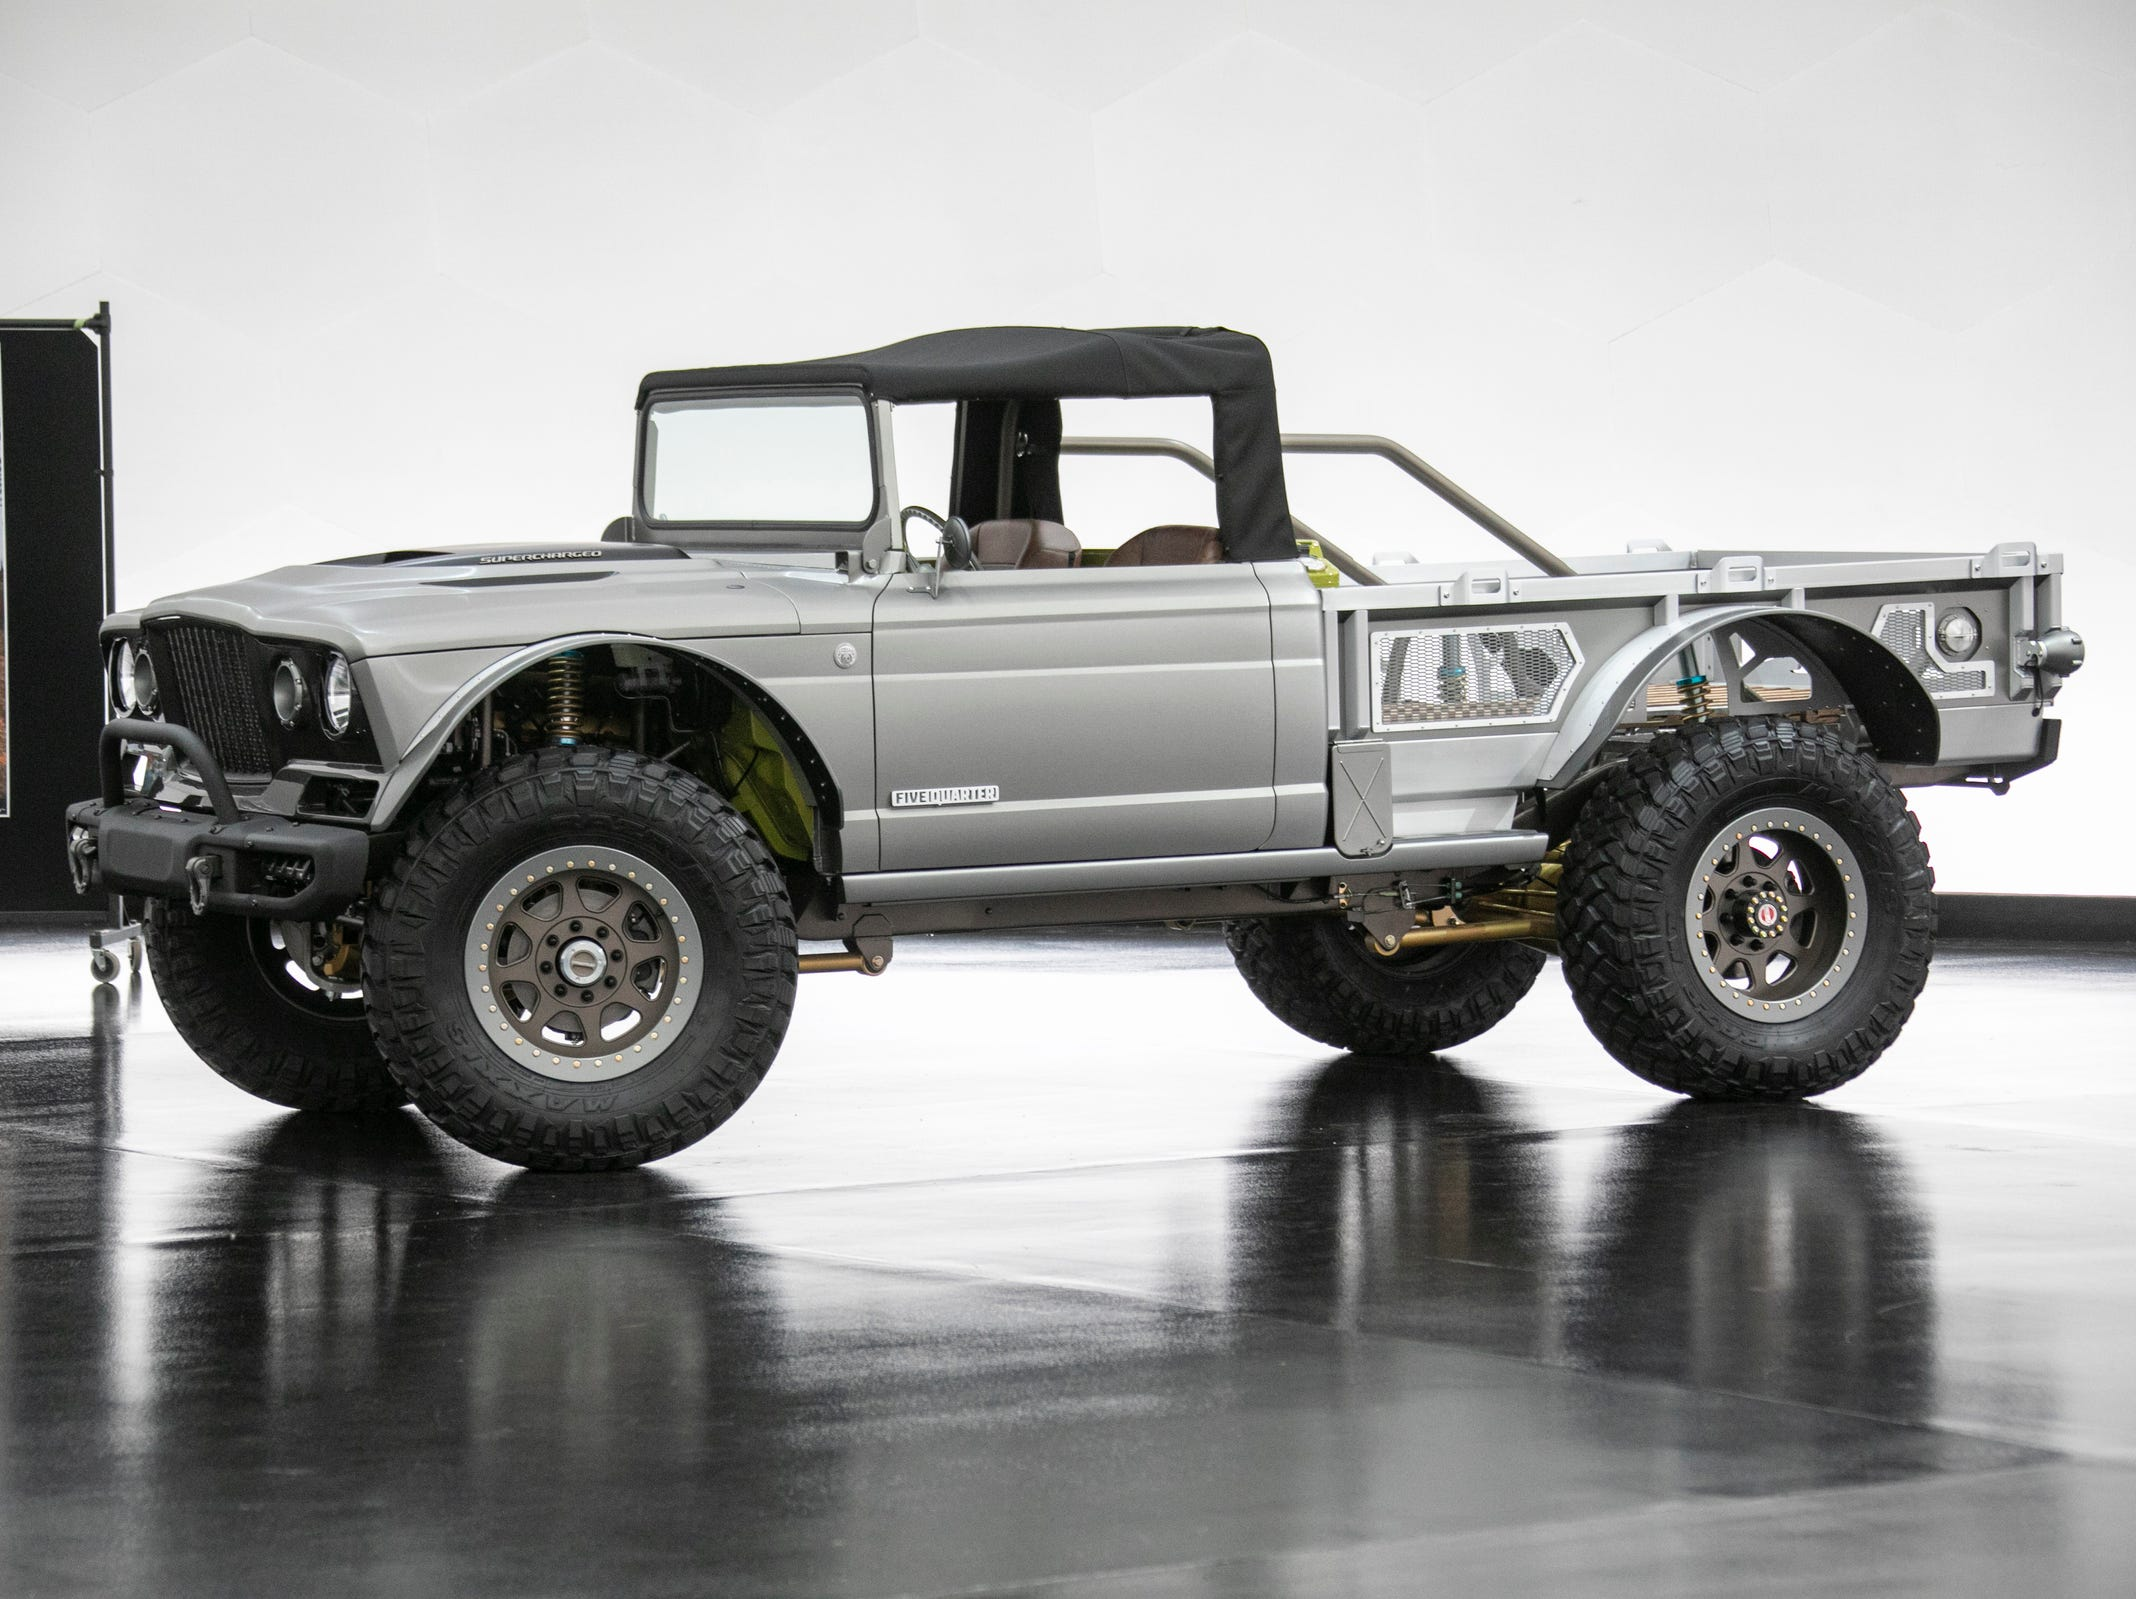 Jeep and Mopar brands debut six concept vehicles including the Jeep M-715 Five-Quarter Friday, April 5, 2019 at the Fiat Chrysler Tech Center and headquarters for the 53rd annual Moab Easter Jeep Safari. The Jeep M-715 Five-Quarter is a blend of of vintage and modern components. The term Five-Quarter is a historical reference to Jeep trucks of the past that were one-and-one-quarter tons or five quarters. Starting with a 1968 M-715, this Gladiator-based military vehicle was re-imagined with improvements to ist chassis, drivetrain and cargo configuration. The color name for this vehicle is Gin and Tonic.